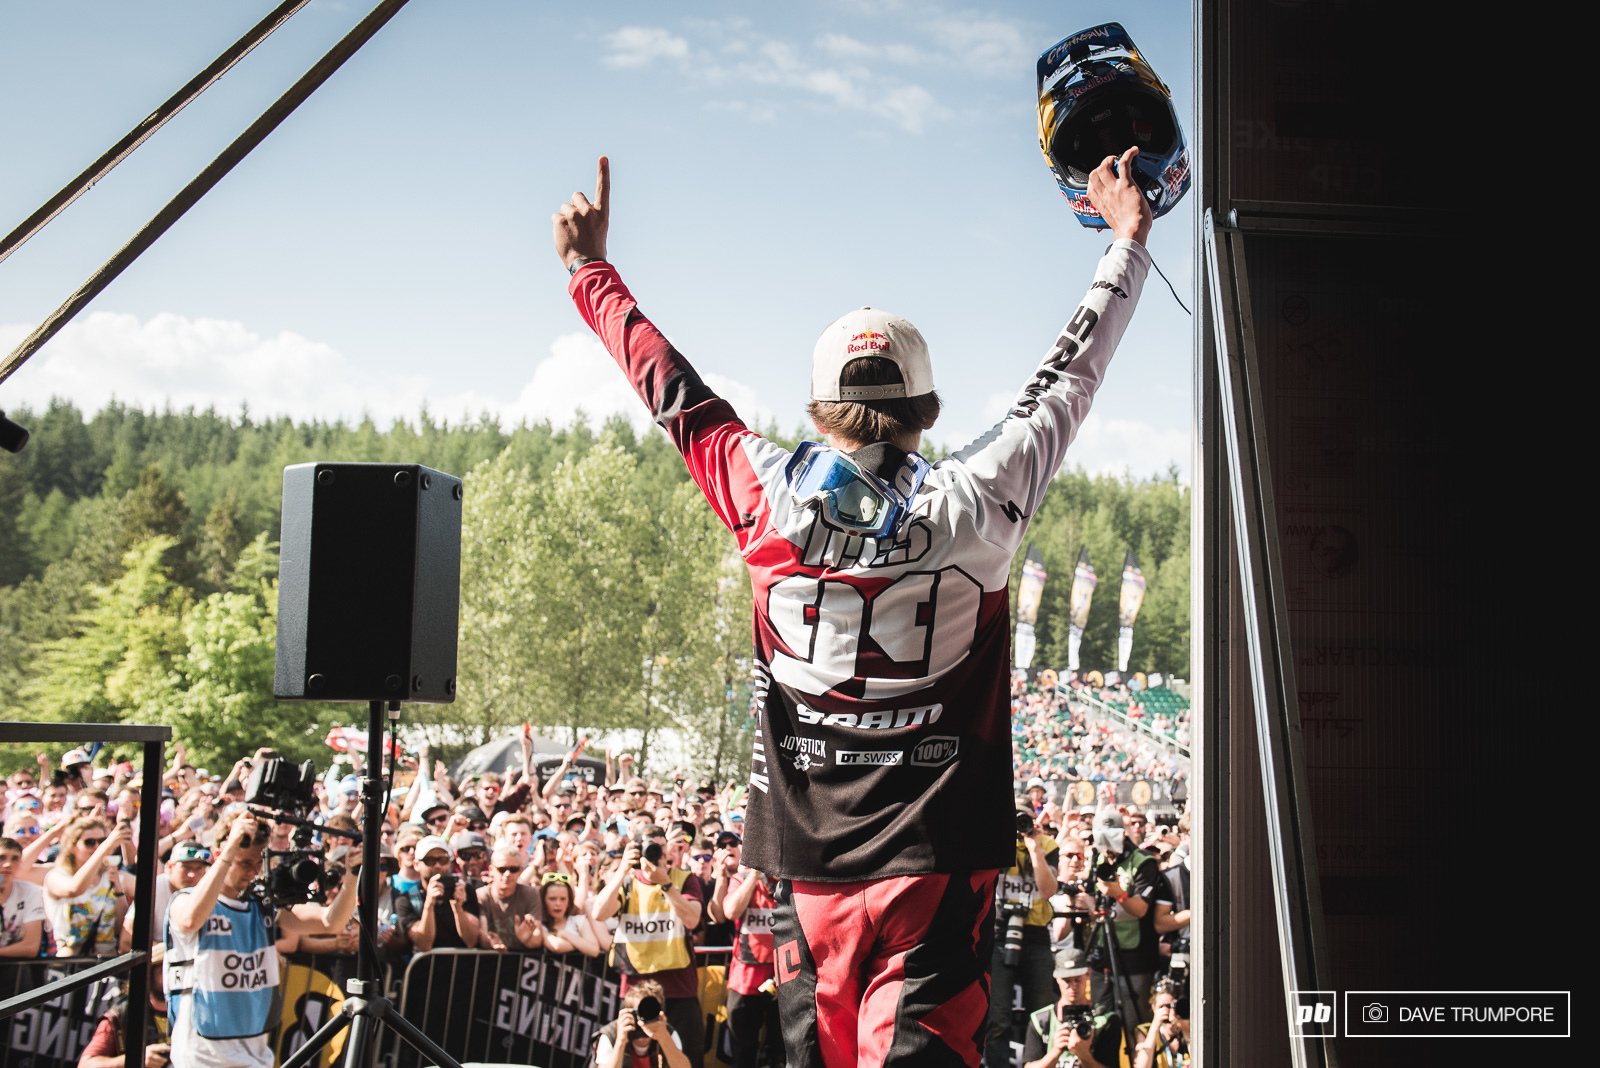 Finn soaks in the electric atmosphere of Fort William on his way to the podium.